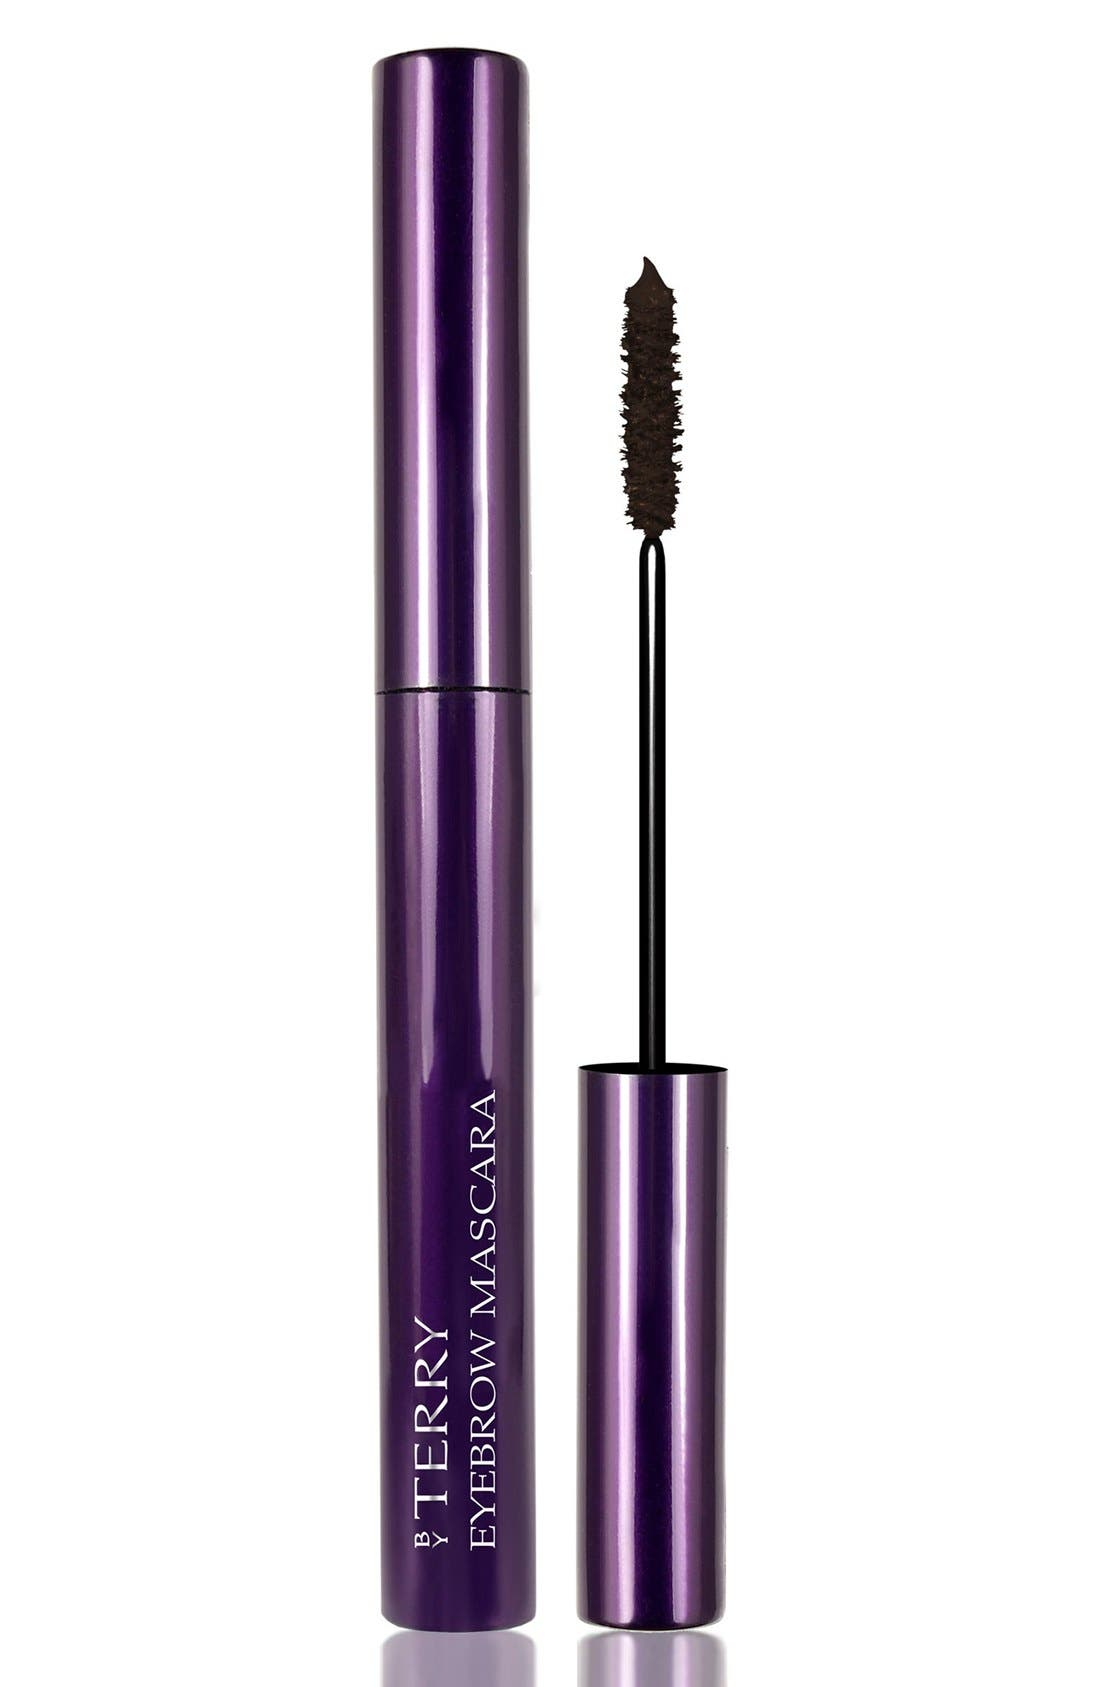 SPACE.NK.apothecary By Terry Eyebrow Mascara,                         Main,                         color, 4 DARK BROWN